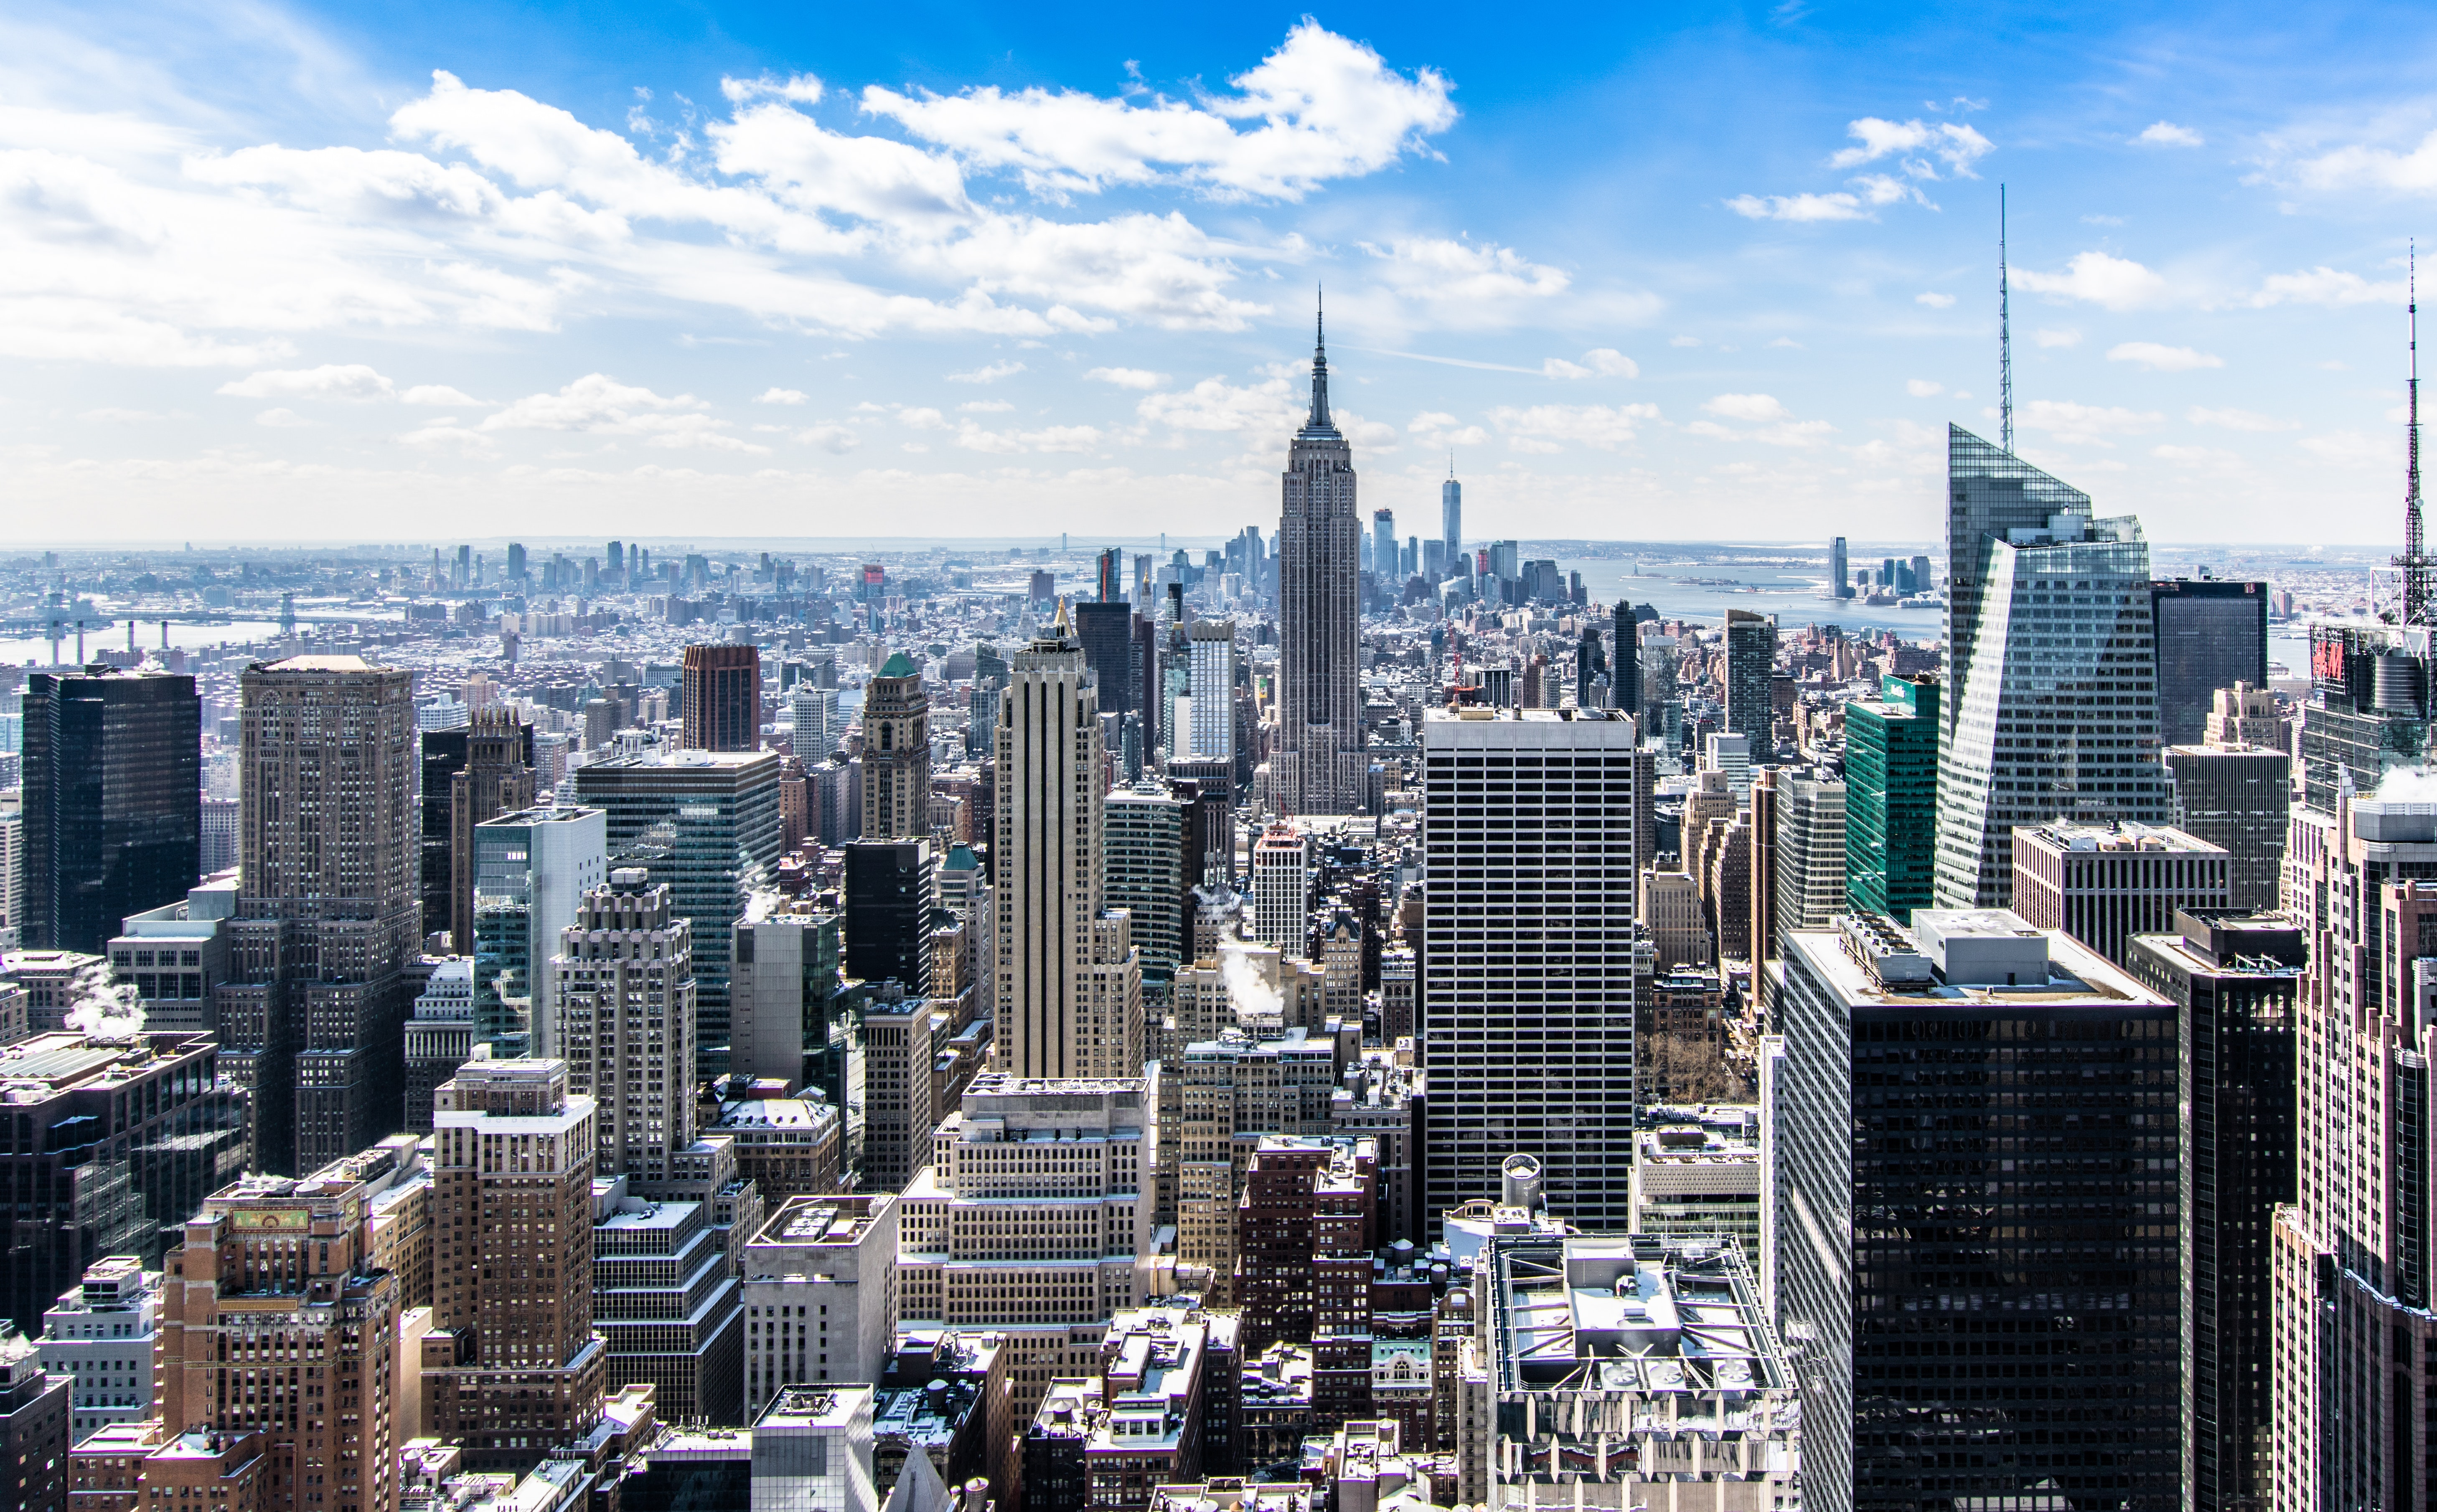 Of The Images Display The Skyline Of New York City London Or Paris No Wonder Since These Cities Make Beautiful City Photography Feel Free To Use All